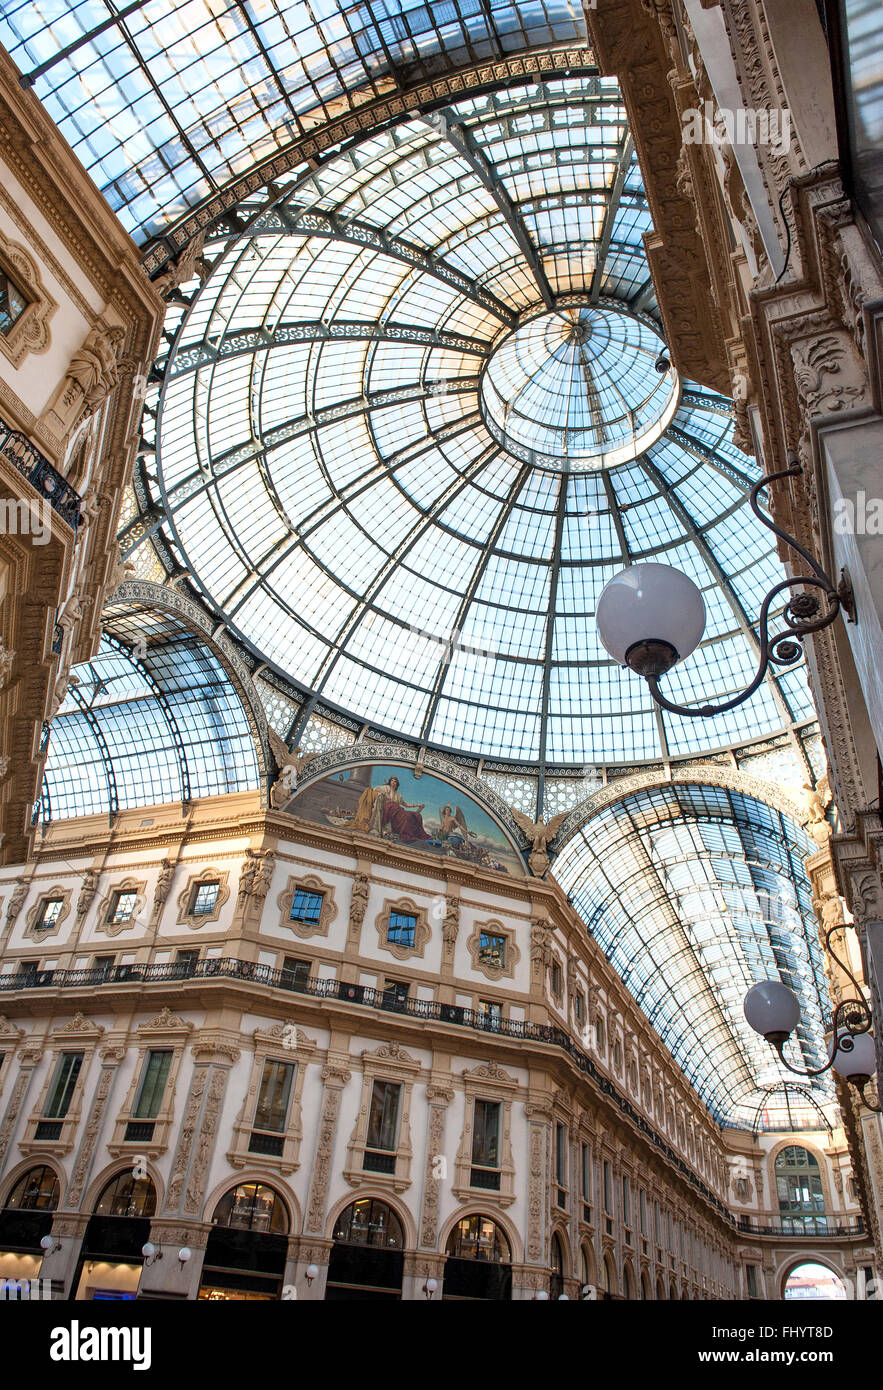 Low angle view of corridors and circular domed ceiling and windows inside the Vittorio Emanuele Milan shopping mall - Stock Image